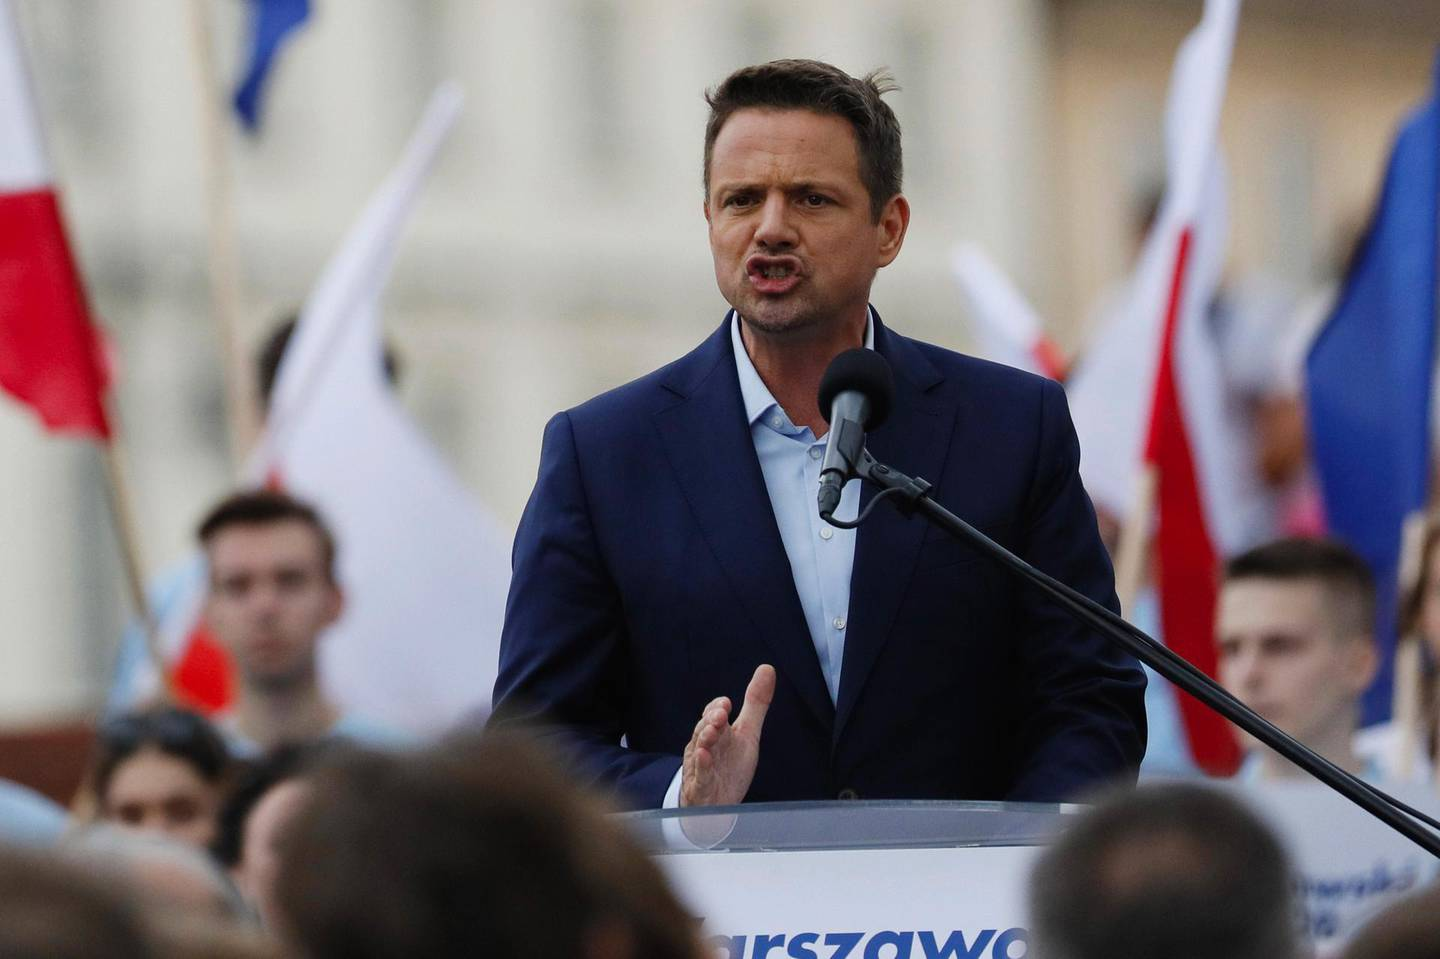 Rafal Trzaskowski, presidential candidate for the Civil Party and Mayor of Warsaw, speaks during a election campaign rally in Warsaw, Poland, on Friday, June 26, 2020. The vote, the first of two potential rounds, is a critical moment for a nation that until five years ago was hailed as a model of transformation from communism to a thriving democracy. Photographer: Piotr Malecki/Bloomberg